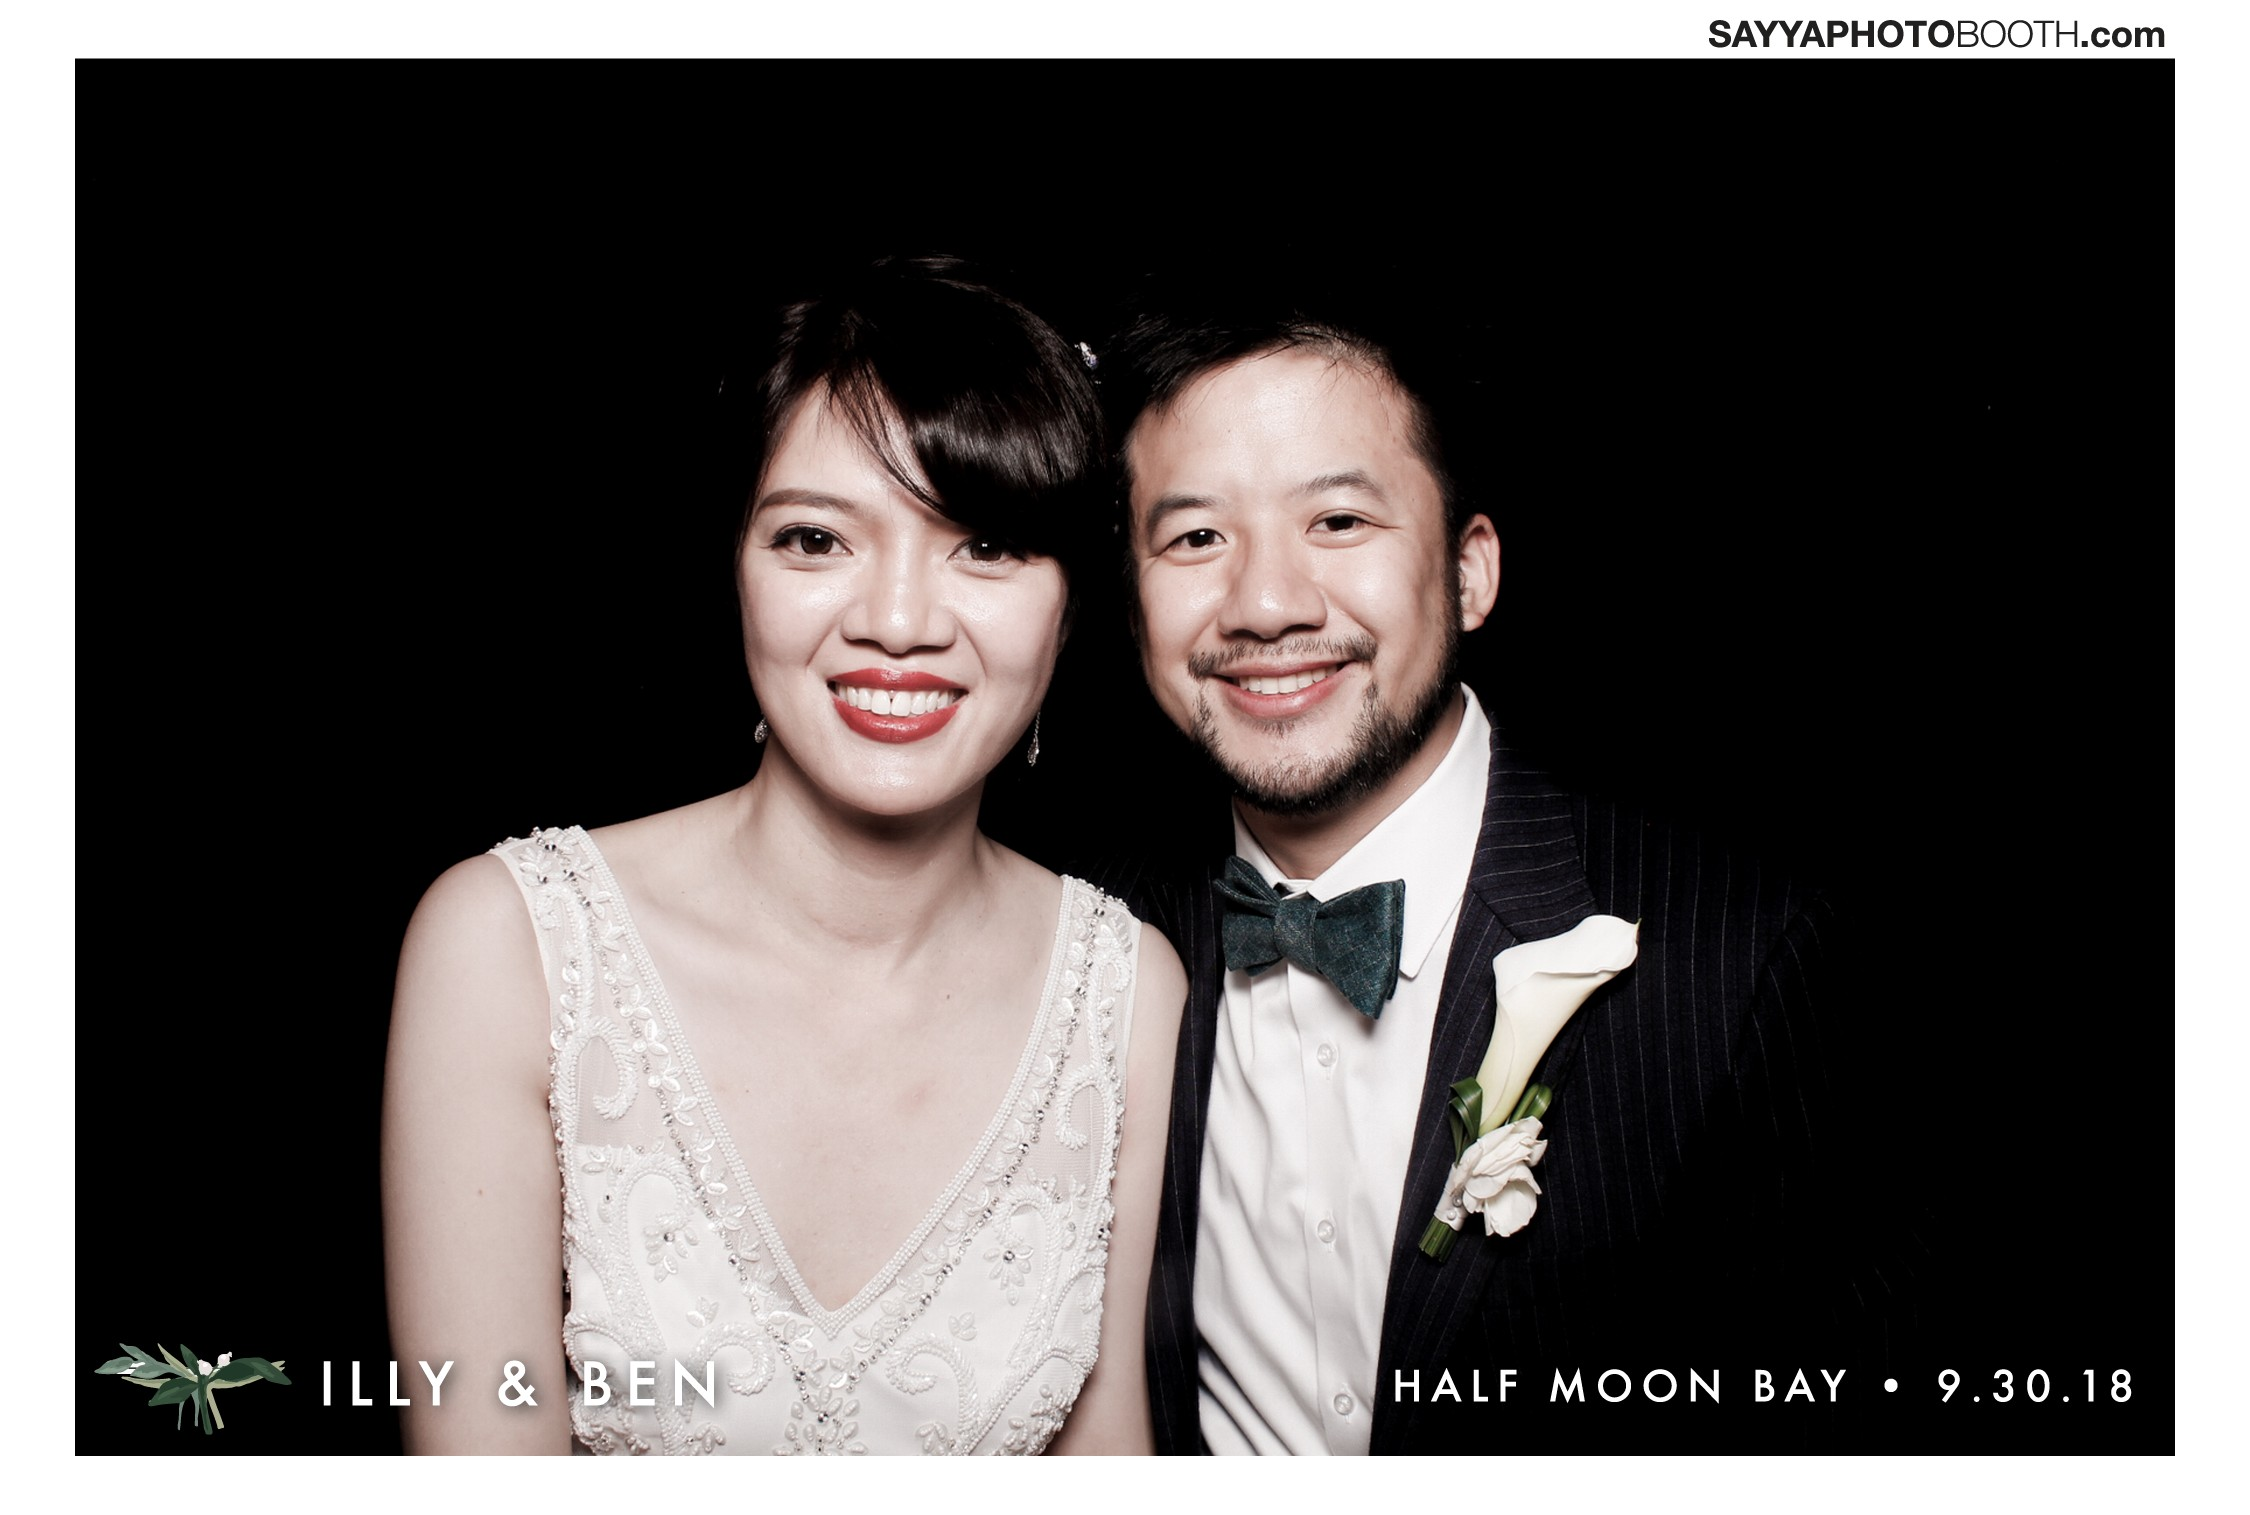 Illy and Ben's Wedding